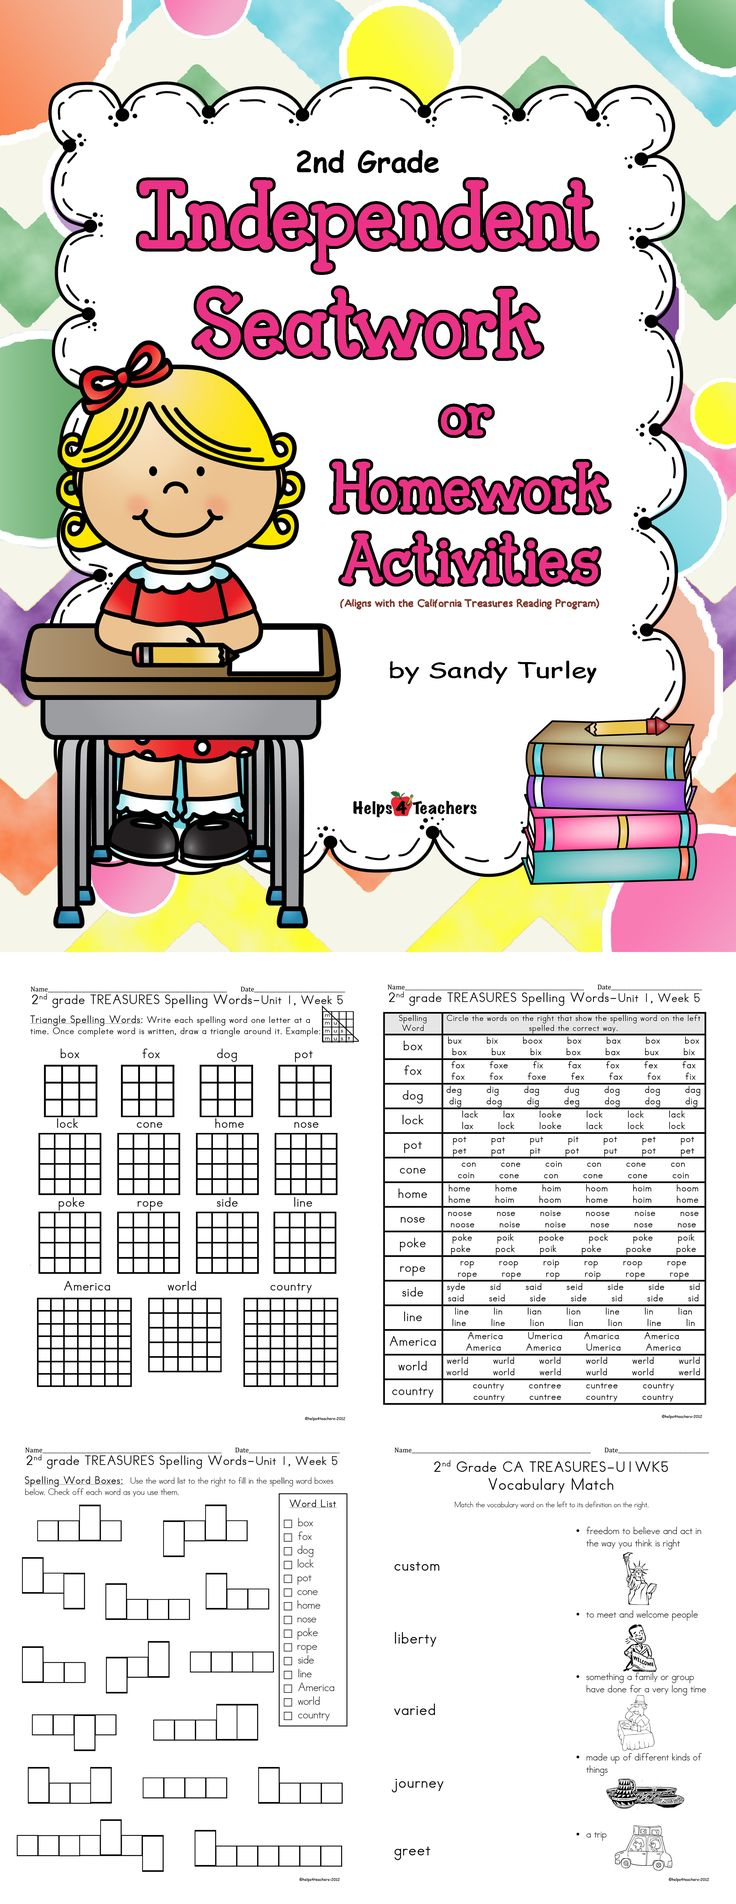 $ DYNAMITE!!  This E-book contains 289 pages of Spelling and Vocabulary printable activity sheets. (It is aligned with the 2nd grade California TREASURES reading curriculum.) It includes everything you need for the WHOLE YEAR!!  Includes spelling and vocabulary activity pages.  Found at: http://www.teacherspayteachers.com/Store/Helps4teachers